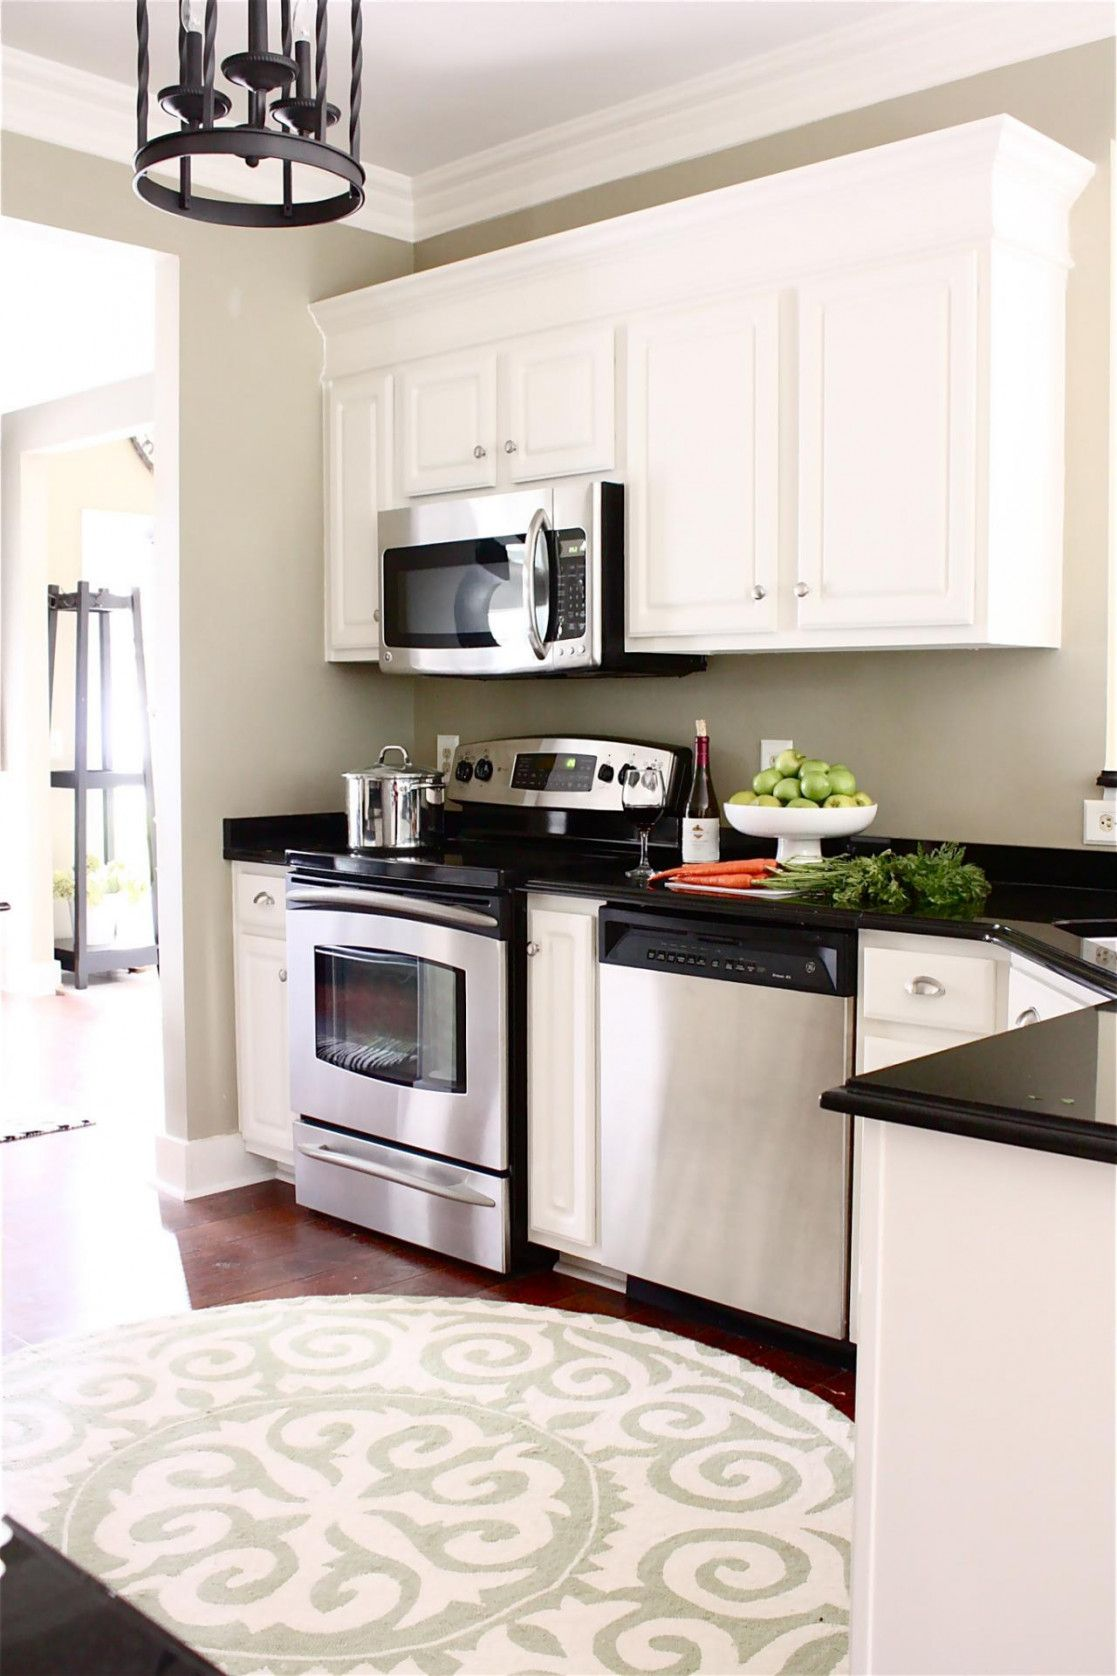 50 30 Tall Base Cabinets Kitchen Decor Theme Ideas Check More At Http